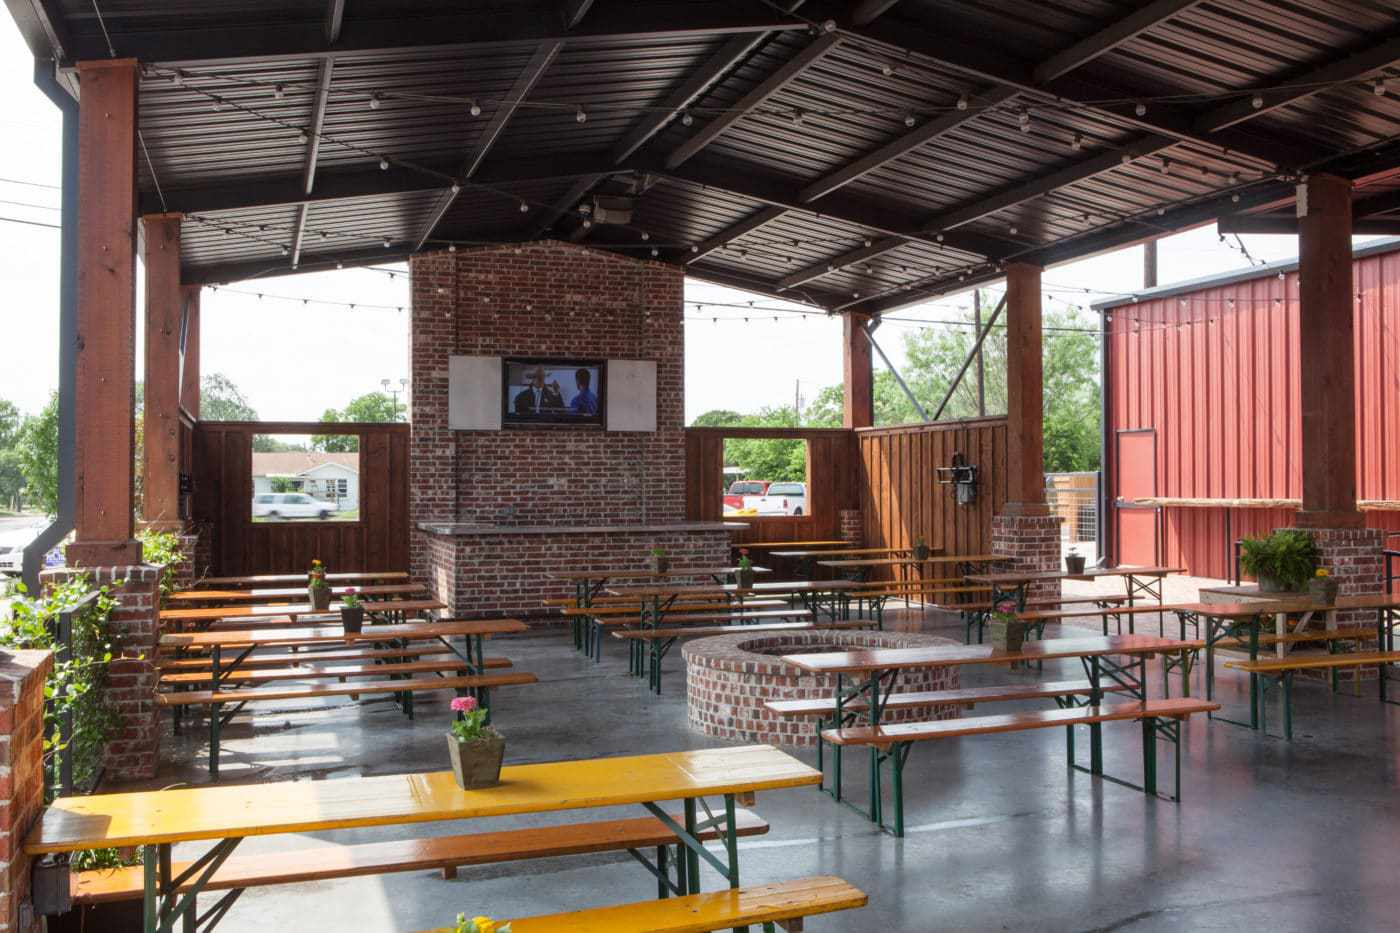 Opensided barn with orange picnic tables at Viteks BBQ